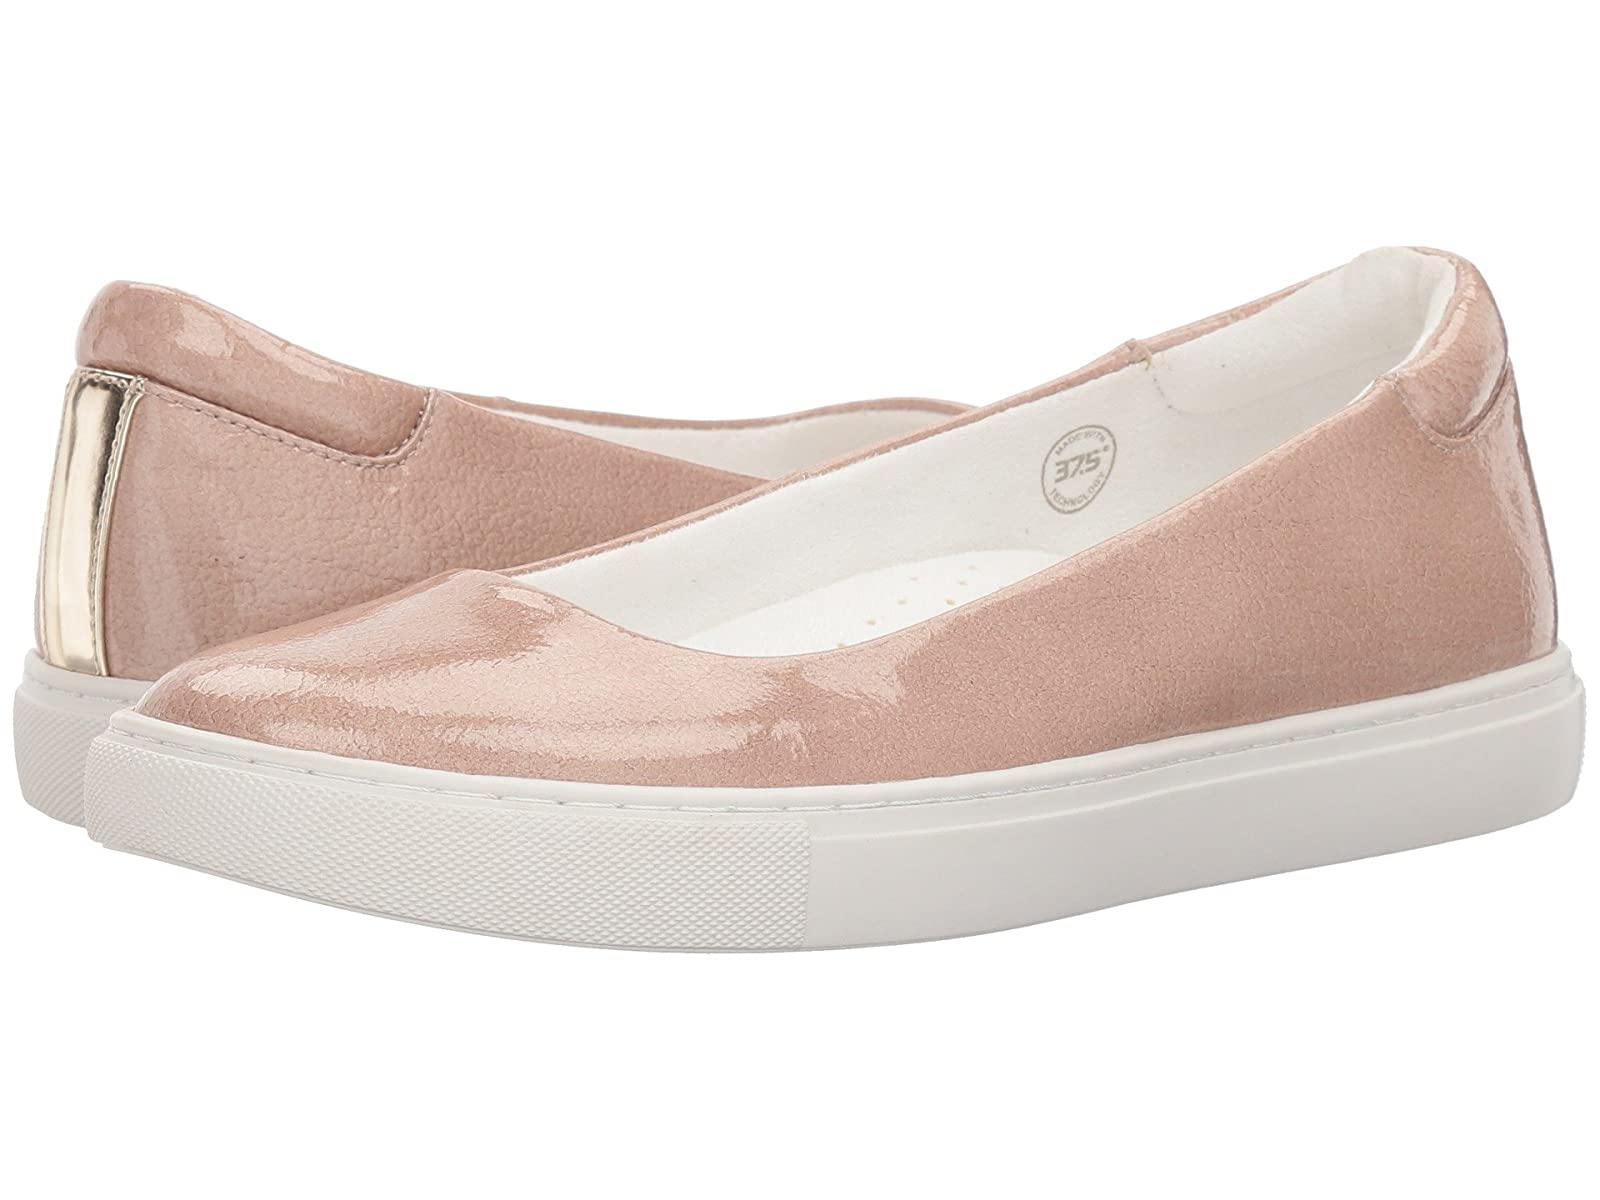 Kenneth Cole New York KassieAtmospheric grades have affordable shoes